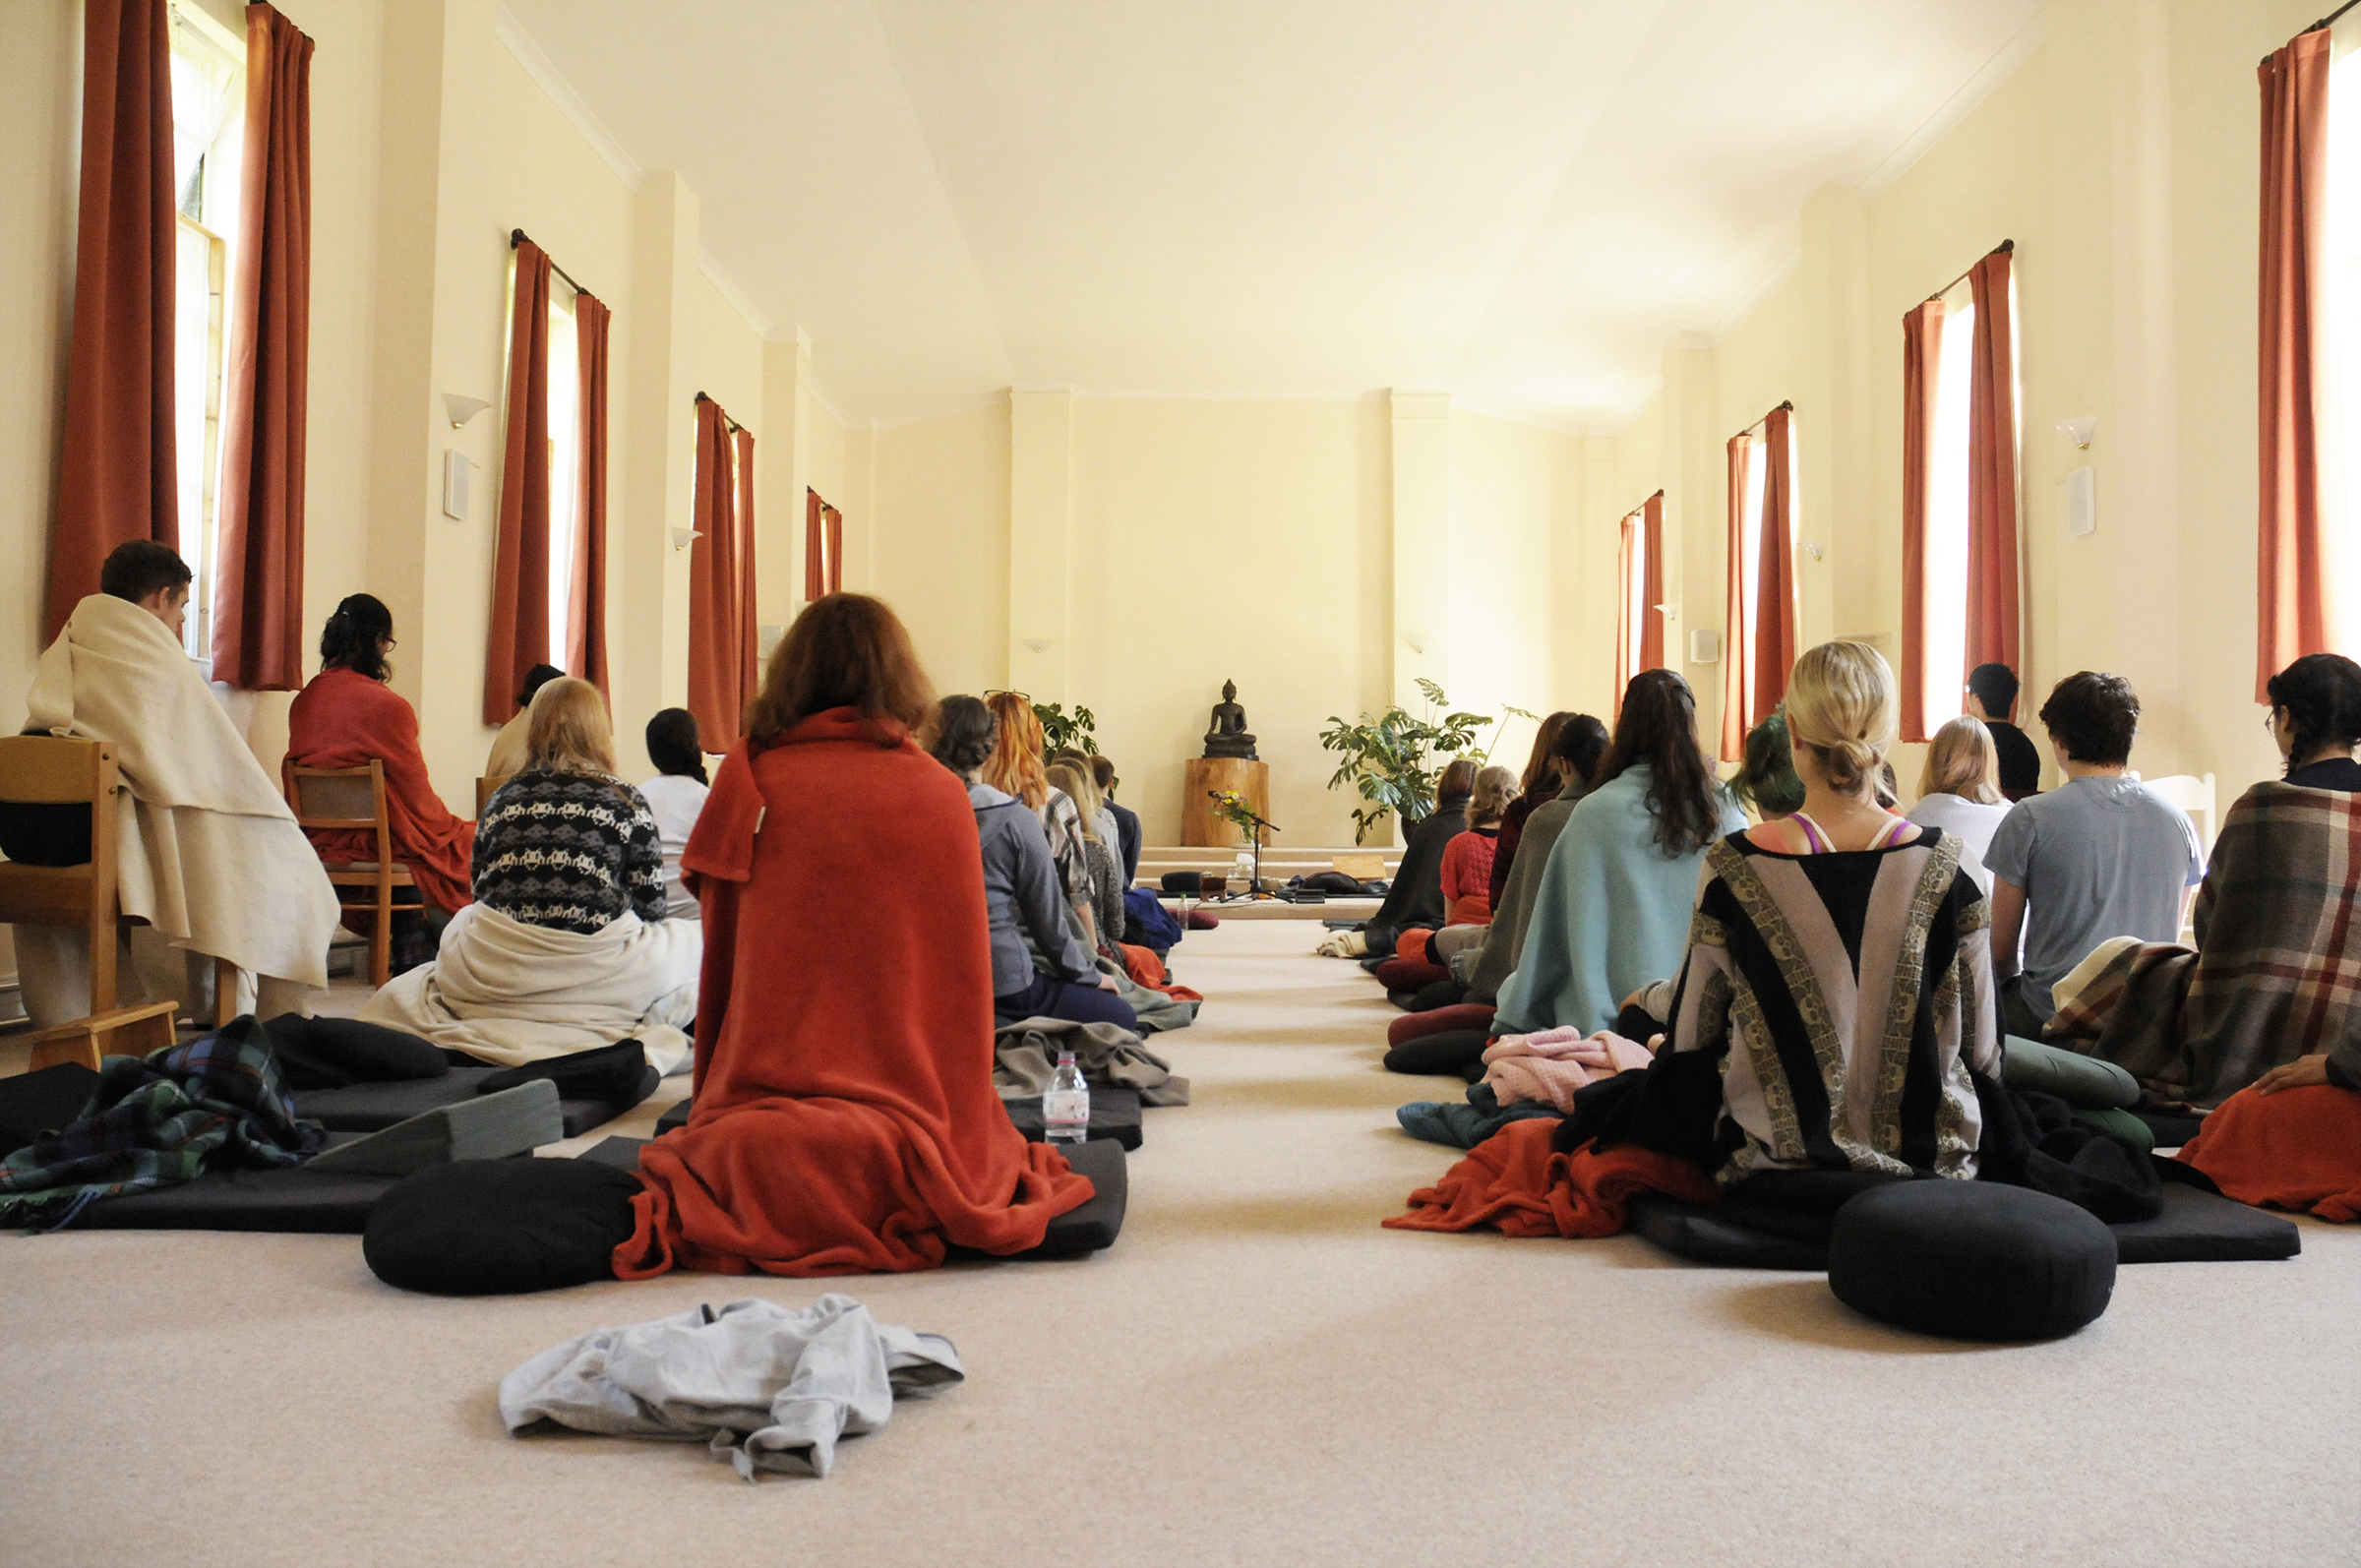 Room with people meditating